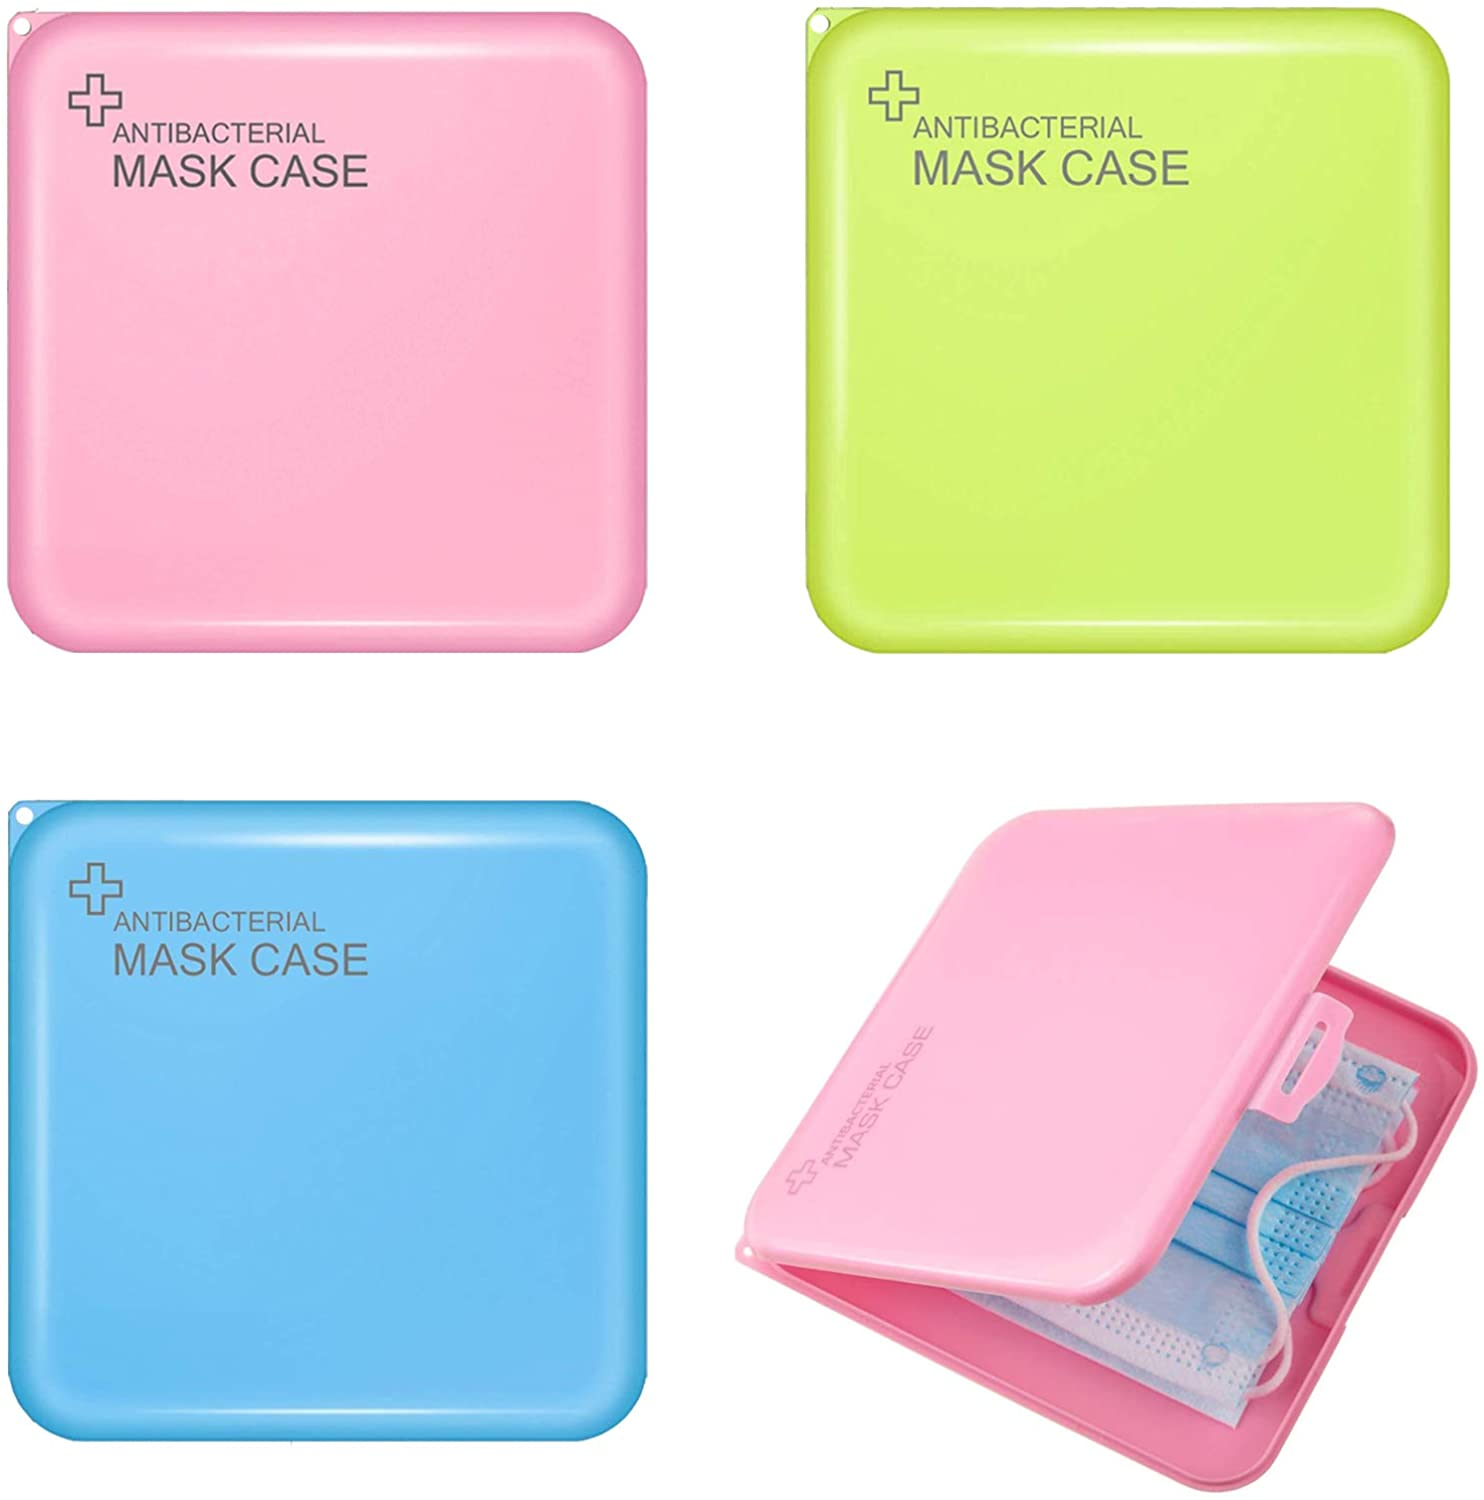 3 PCS Mask Case Holder Portable and Reusable for Mask Storage, Lightweight Face Mask Case Protect Your Face Mask When Not In Use, Mask Case For Kids And Adults To Keep Dirt At Bay (Blue, Green, Pink)